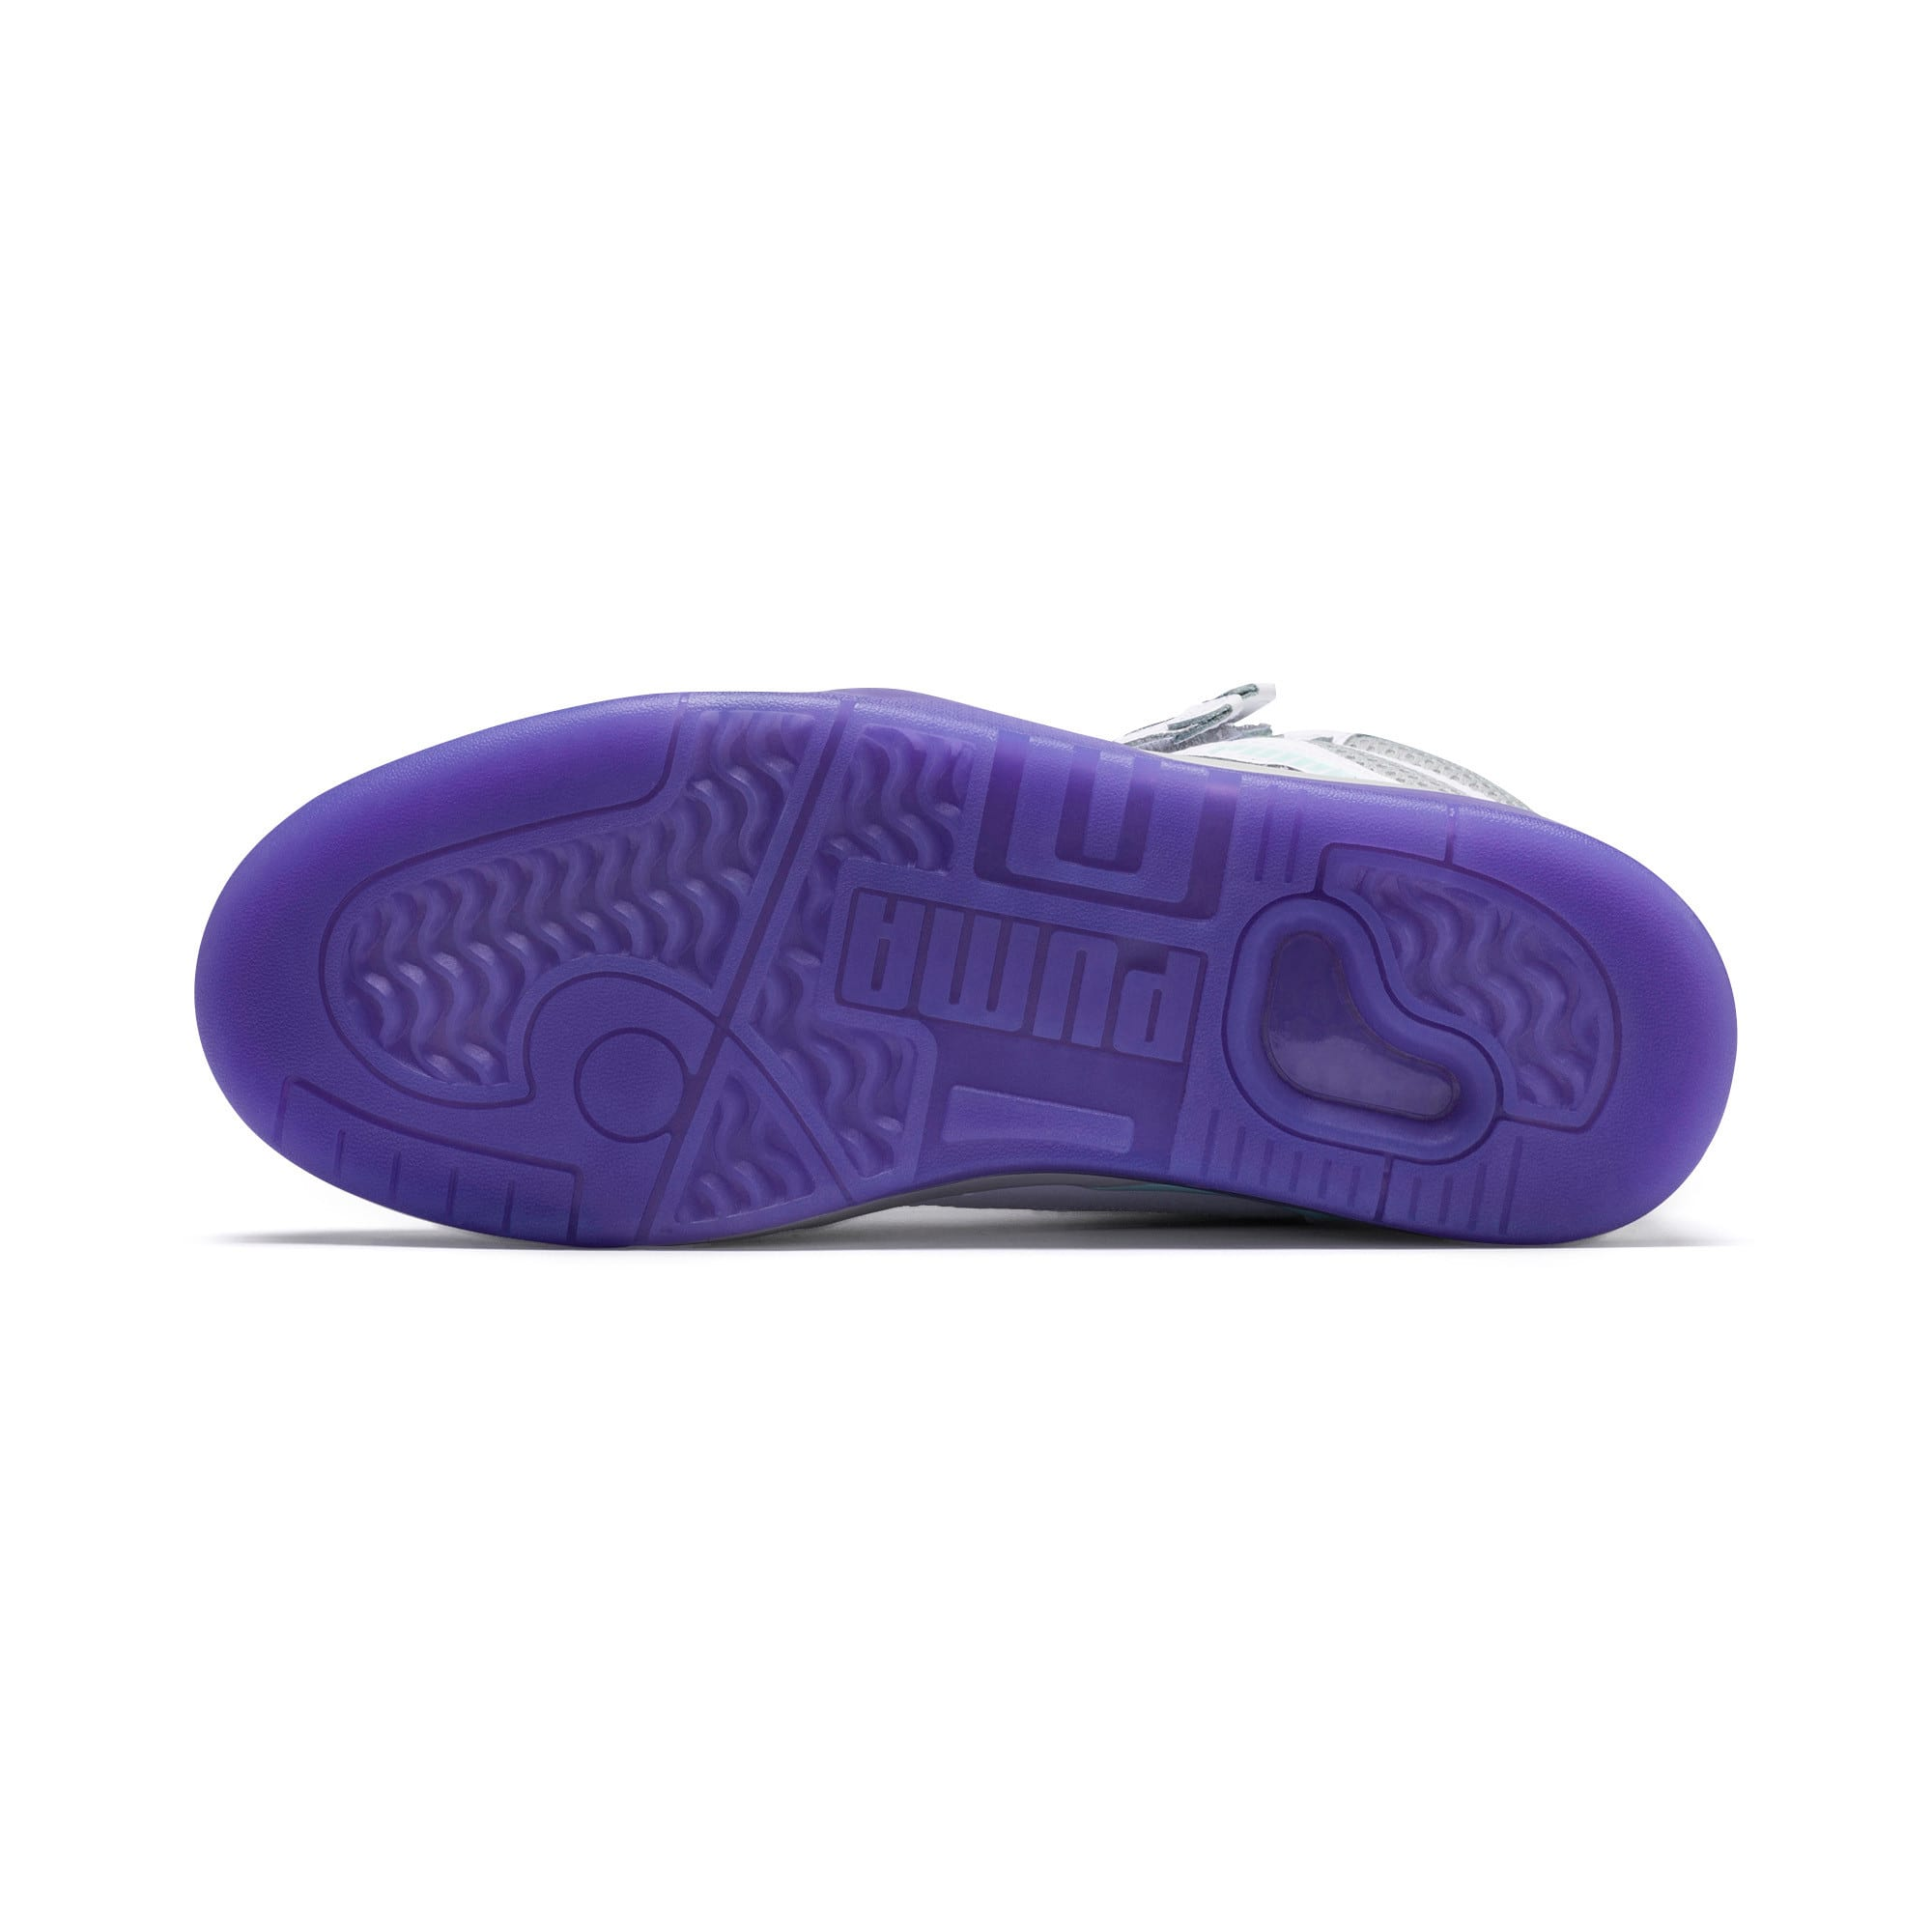 Thumbnail 3 of Palace Guard Mid Easter Sneakers, PWht-Dandelion-Prism Violet, medium